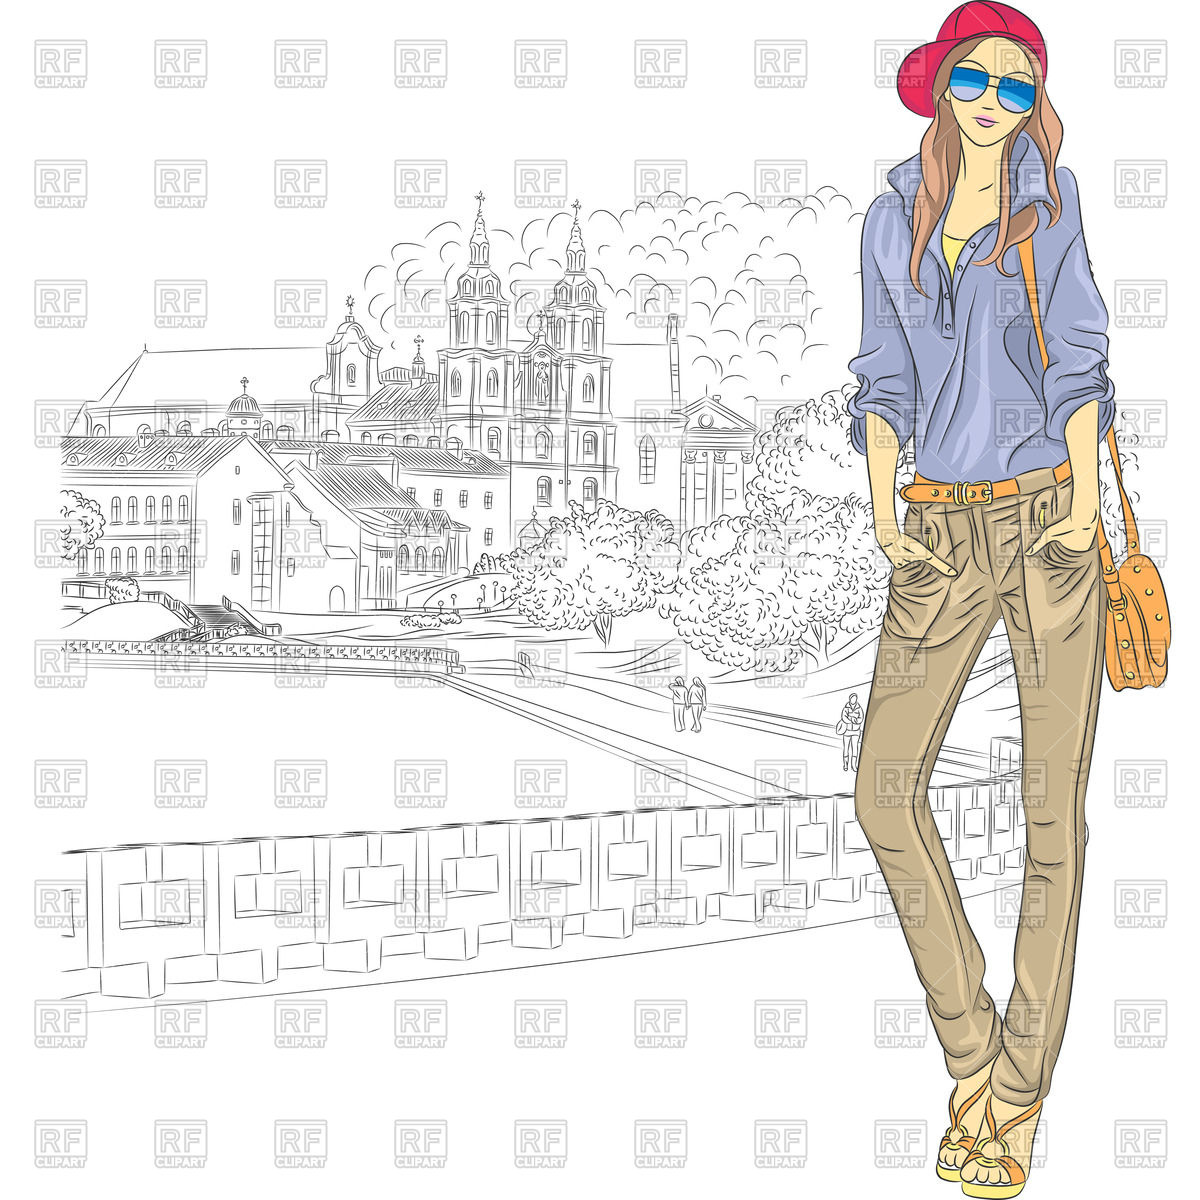 1200x1200 Stylish Girl In Jeans, Jacket And Cap Against A Sketch Style Old